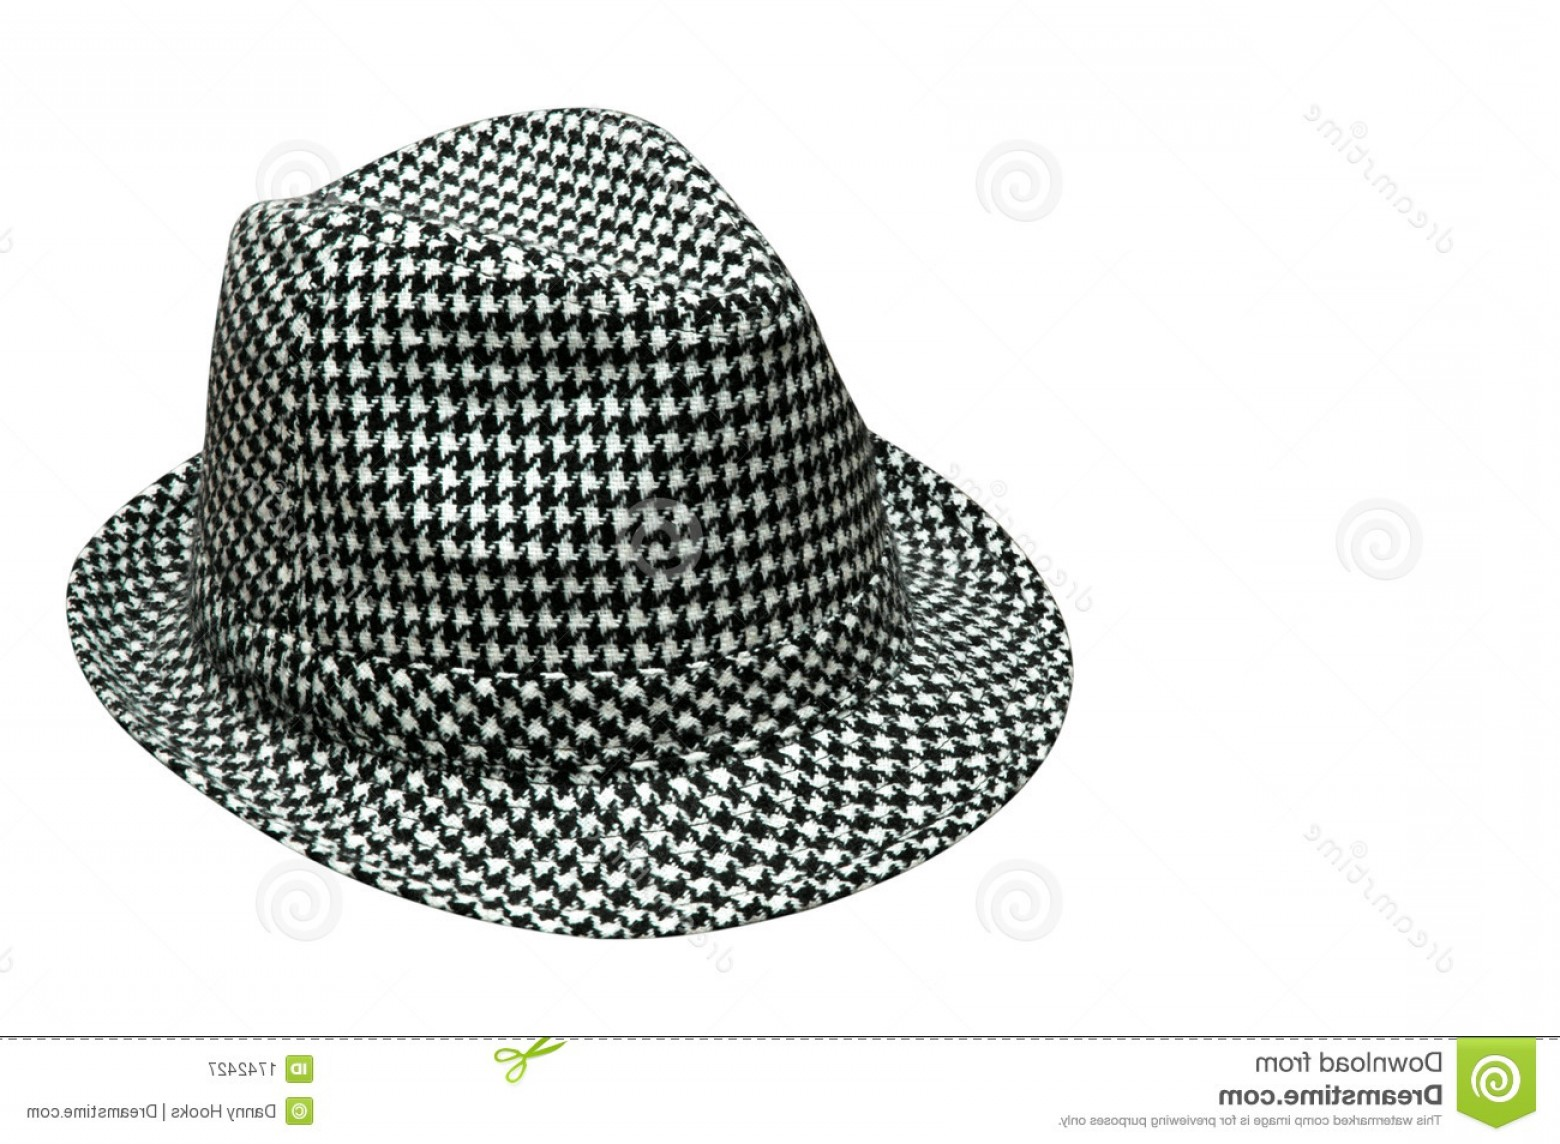 Houndstooth Hats Vector: Royalty Free Stock Photography Houndstooth Hat Image